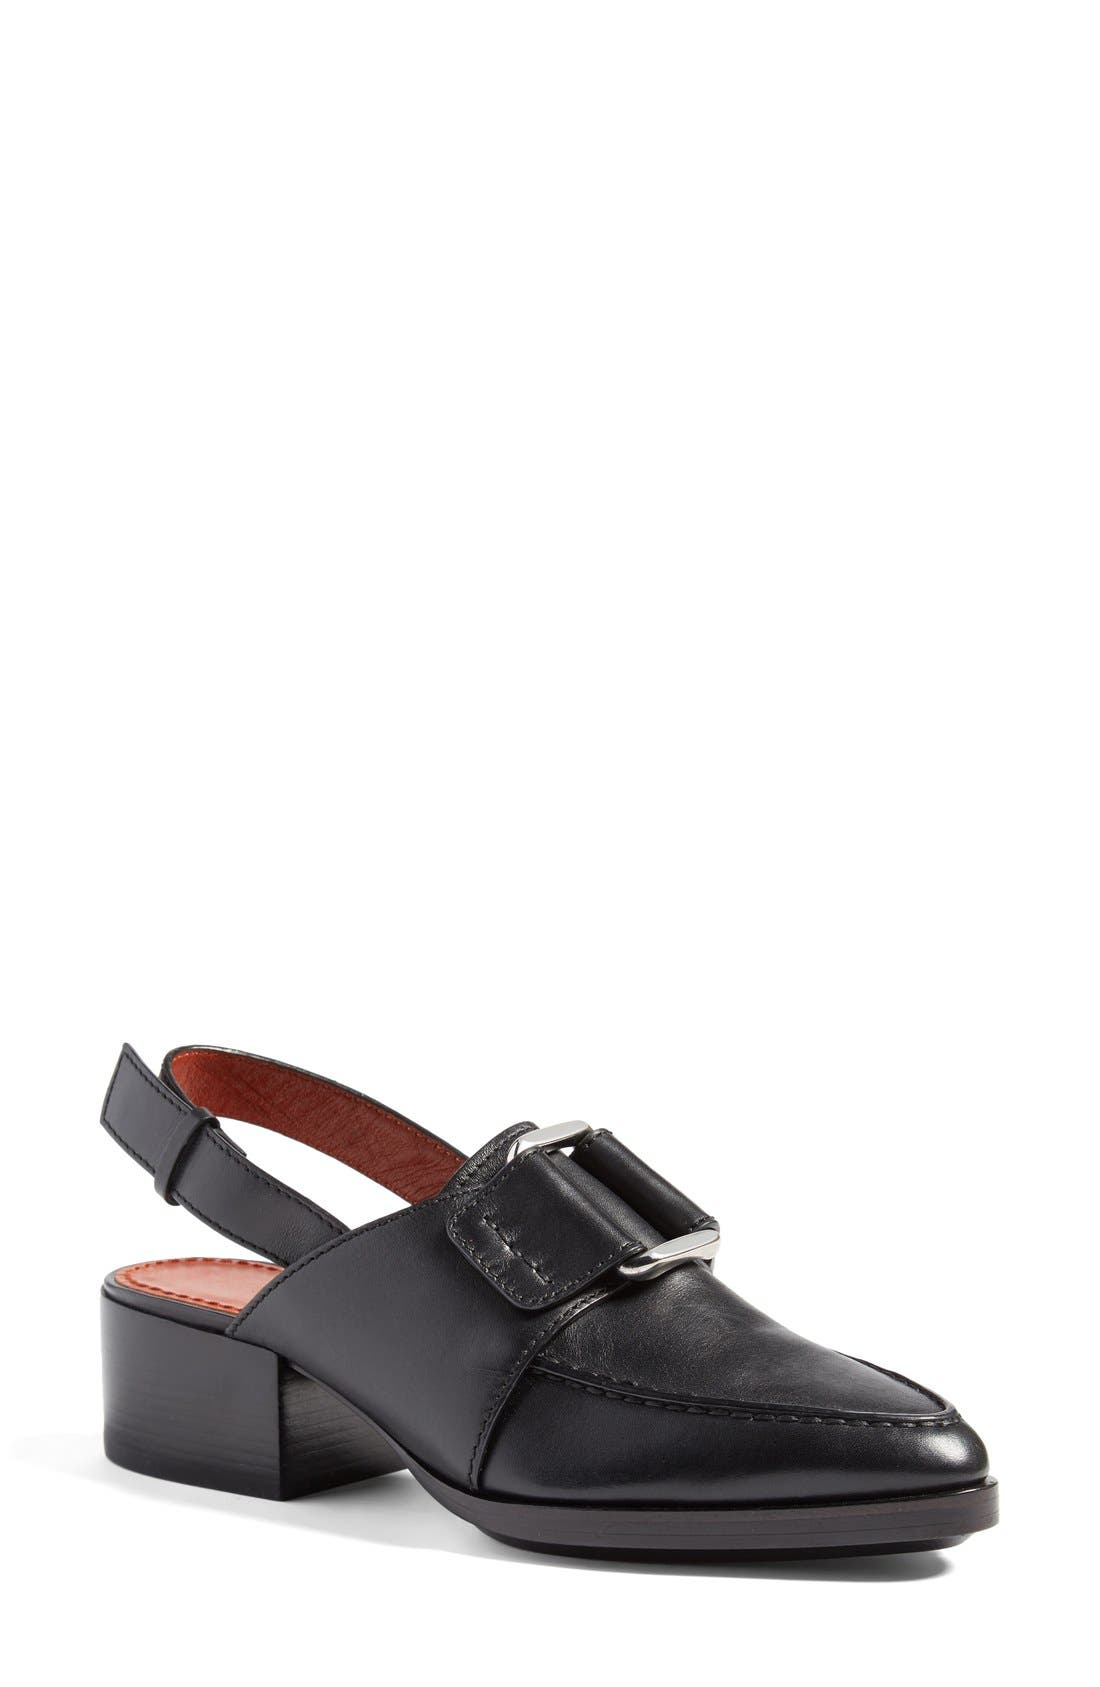 3.1 Phillip Lim Quinn Slingback Loafer (Women)